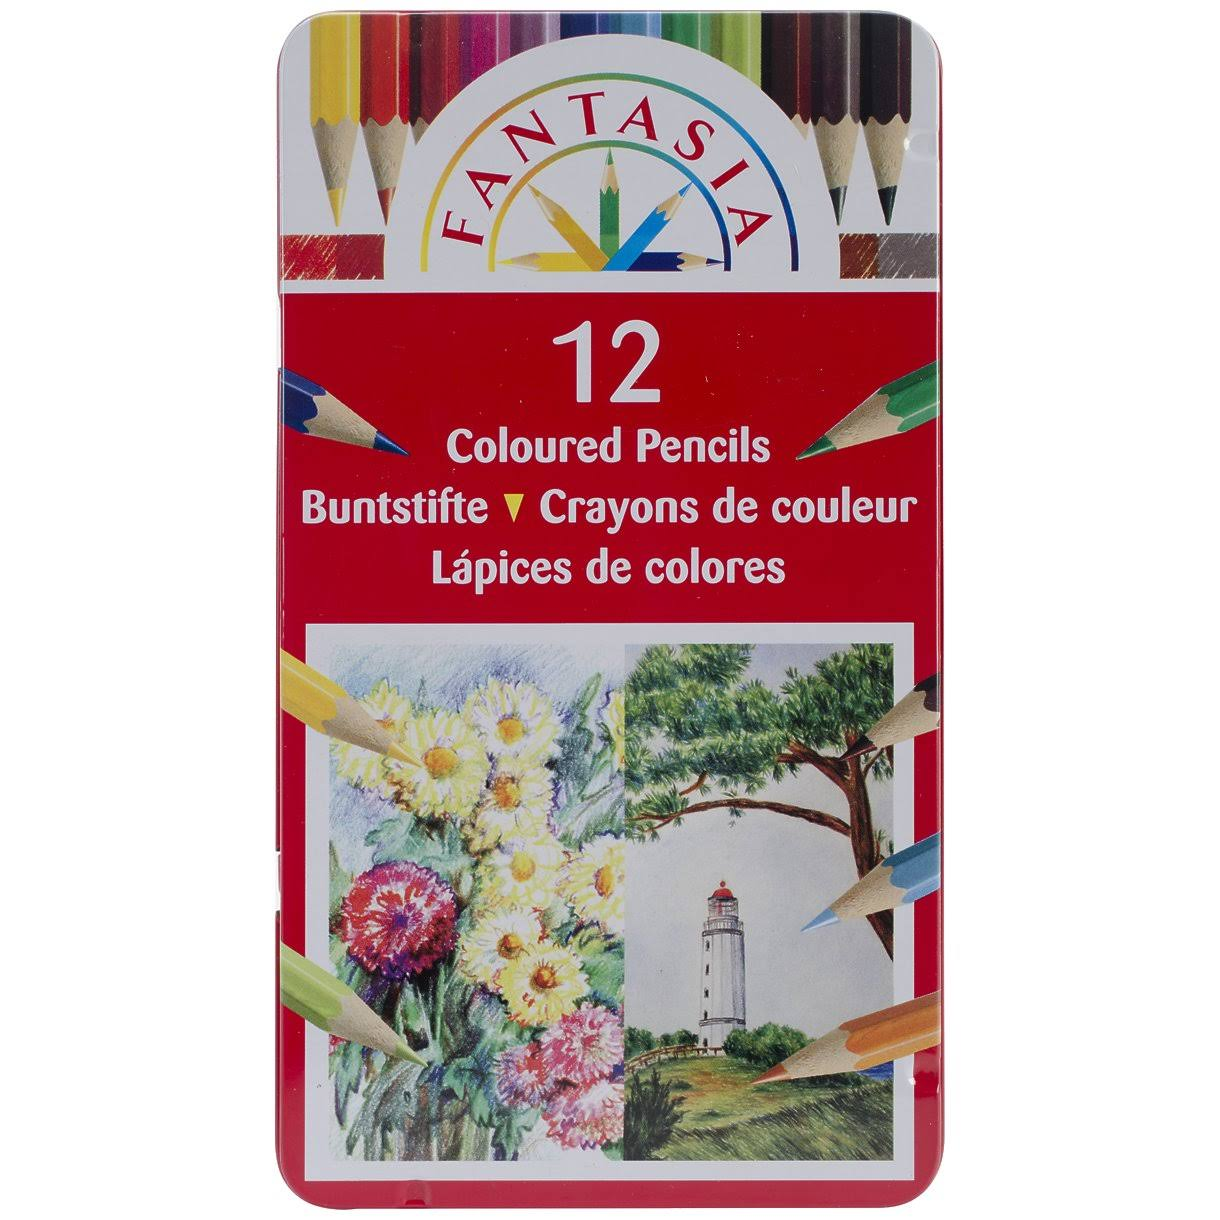 Pro Art Fantasia Colored Pencils - 12pk